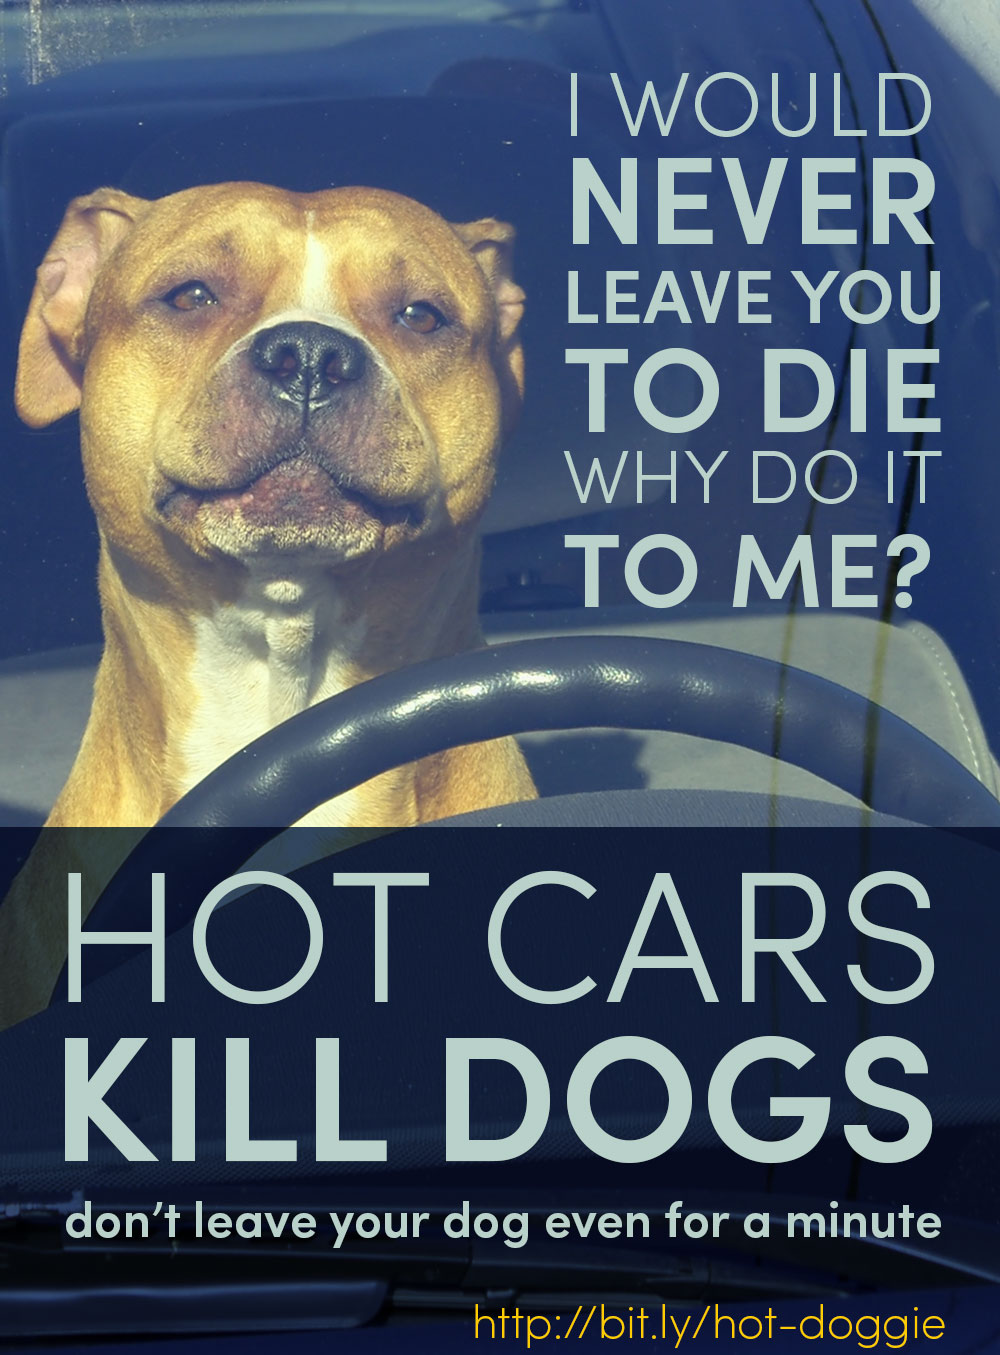 Hot cars kill dogs. Don't leave your dog in a hot car, even for a minute.